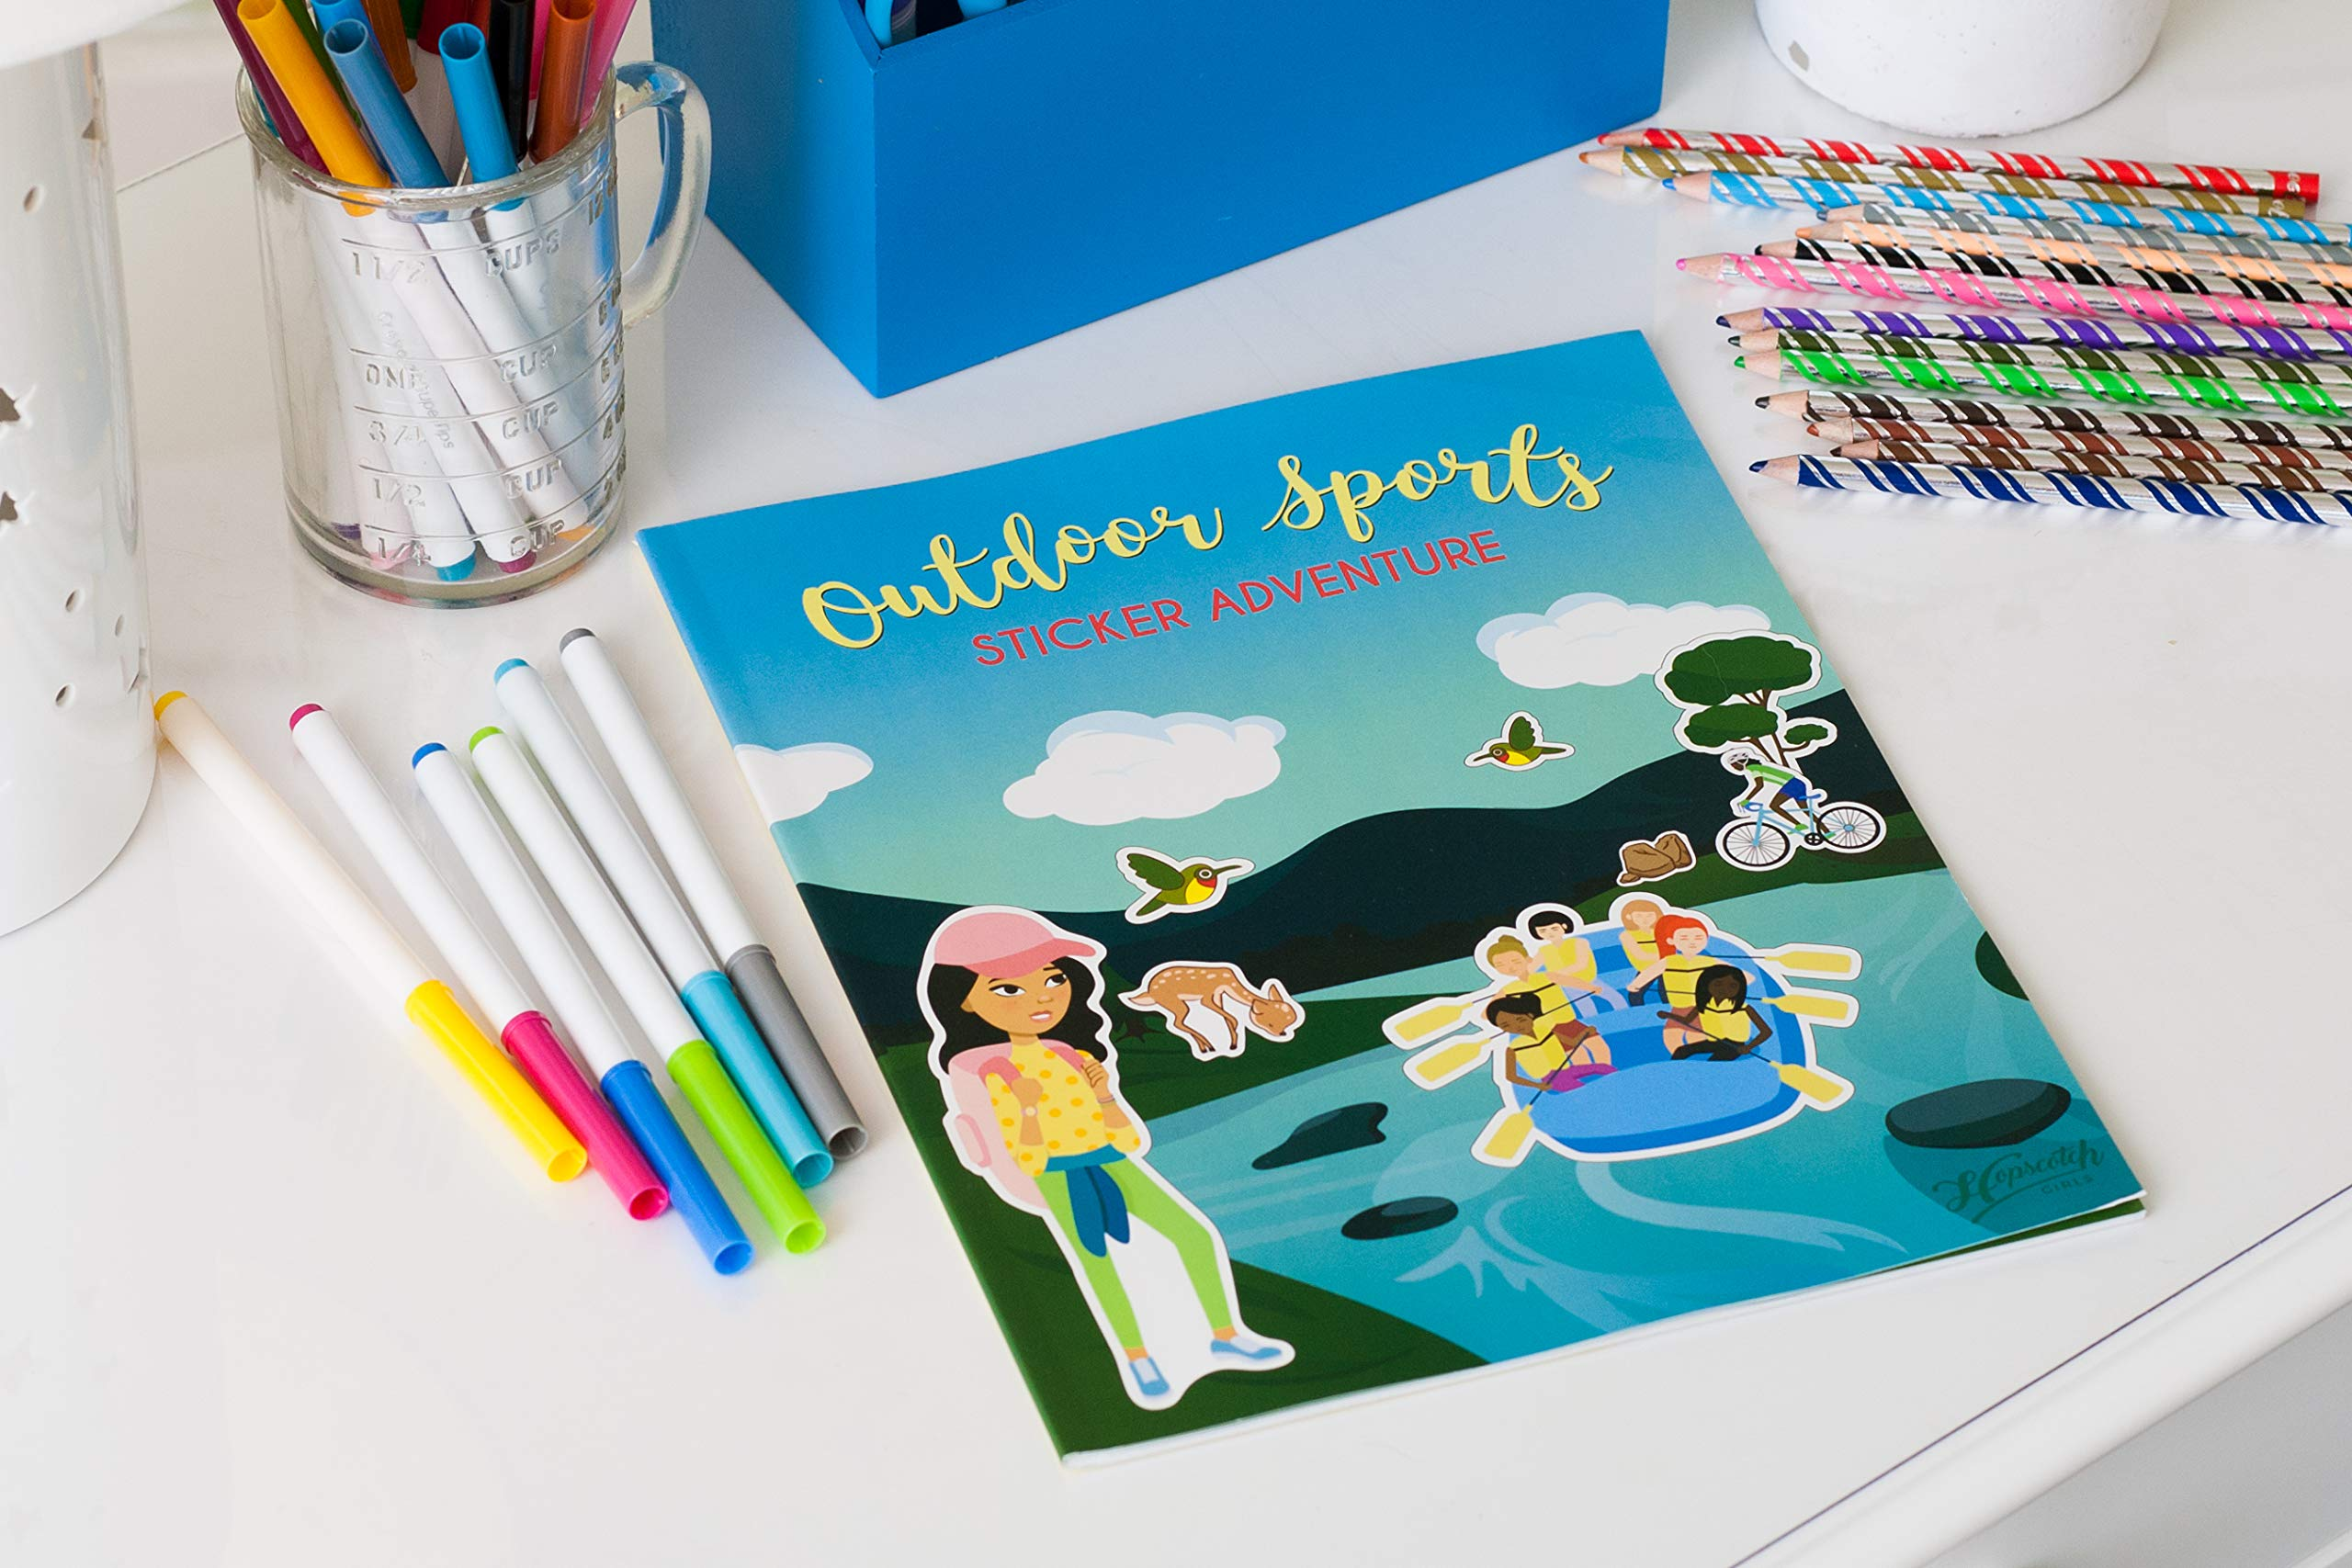 Confidence-Building Sticker Book for Girls Ages 4-8 - Outdoor Sports Sticker Adventure by Hopscotch Girls (Image #3)